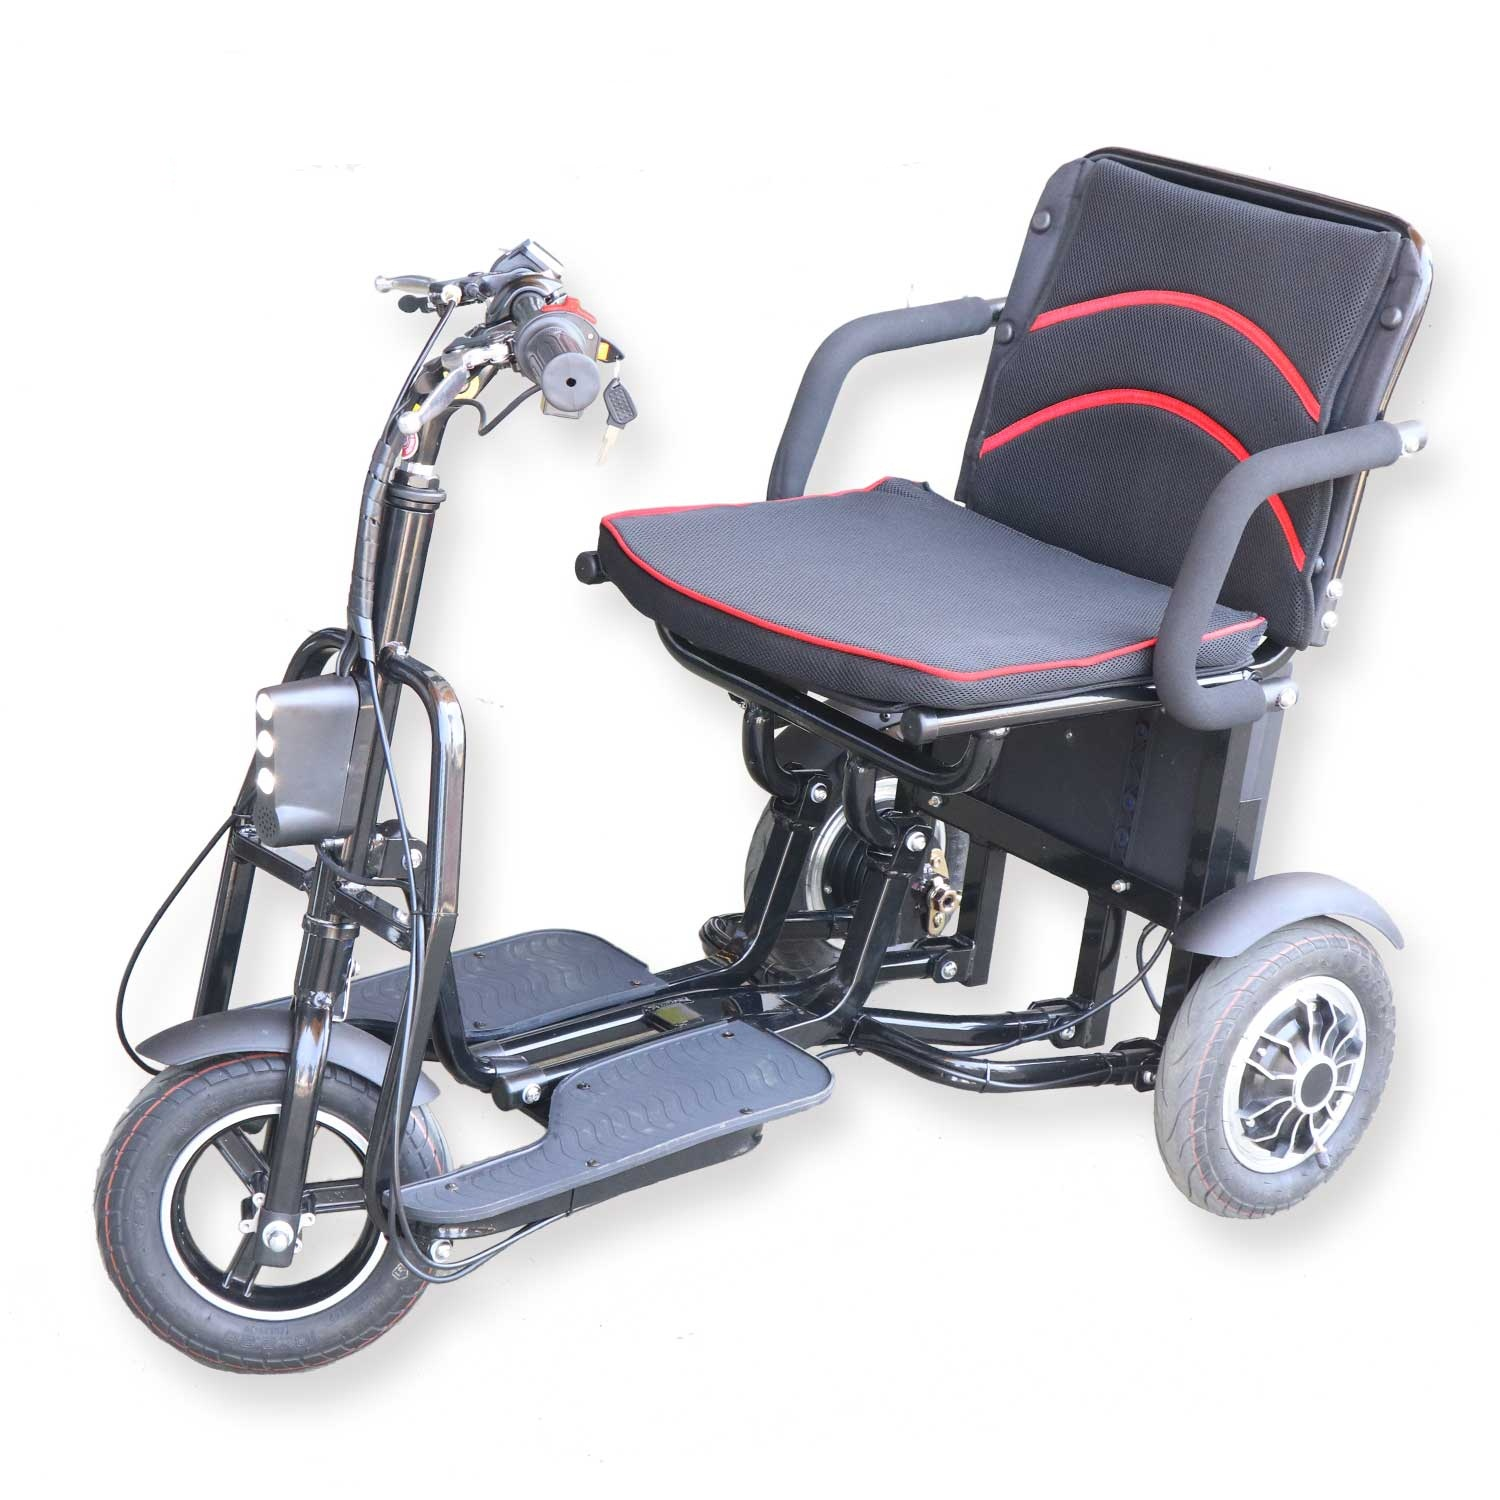 Scooter plegable KY160 cod.1497